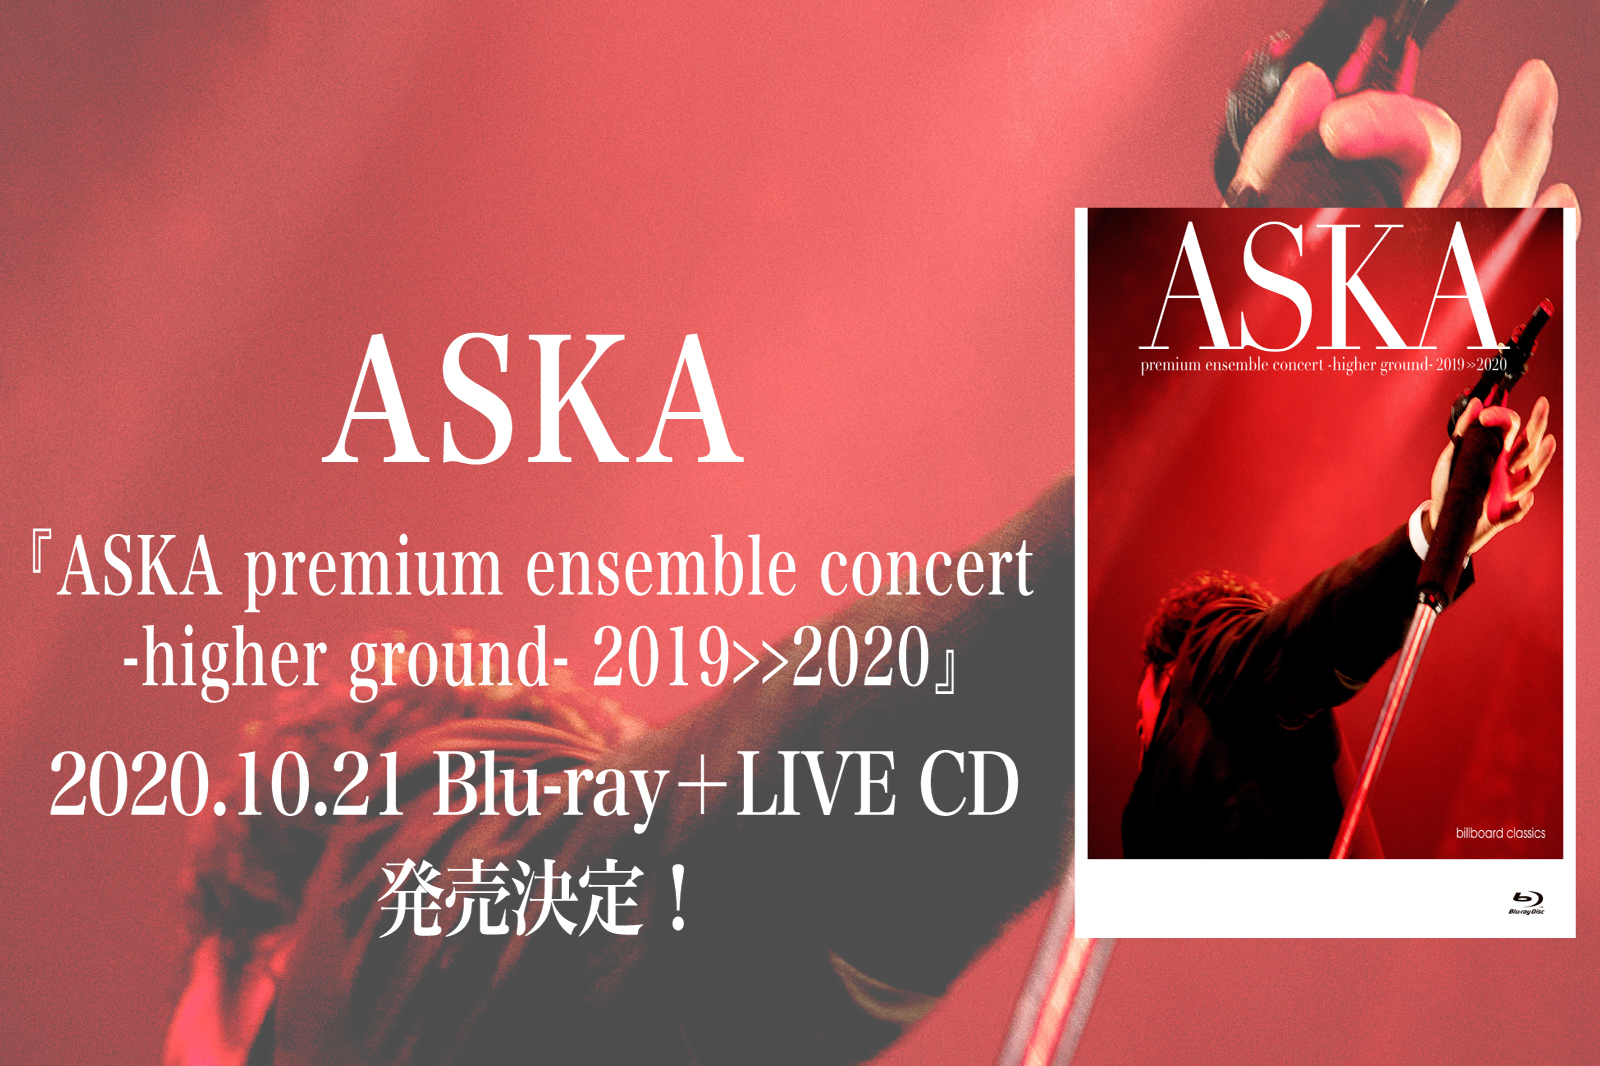 『ASKA premium ensemble concert -higher ground-  2019>>2020』 [Blu-ray]+[LIVE CD]発売決定!!